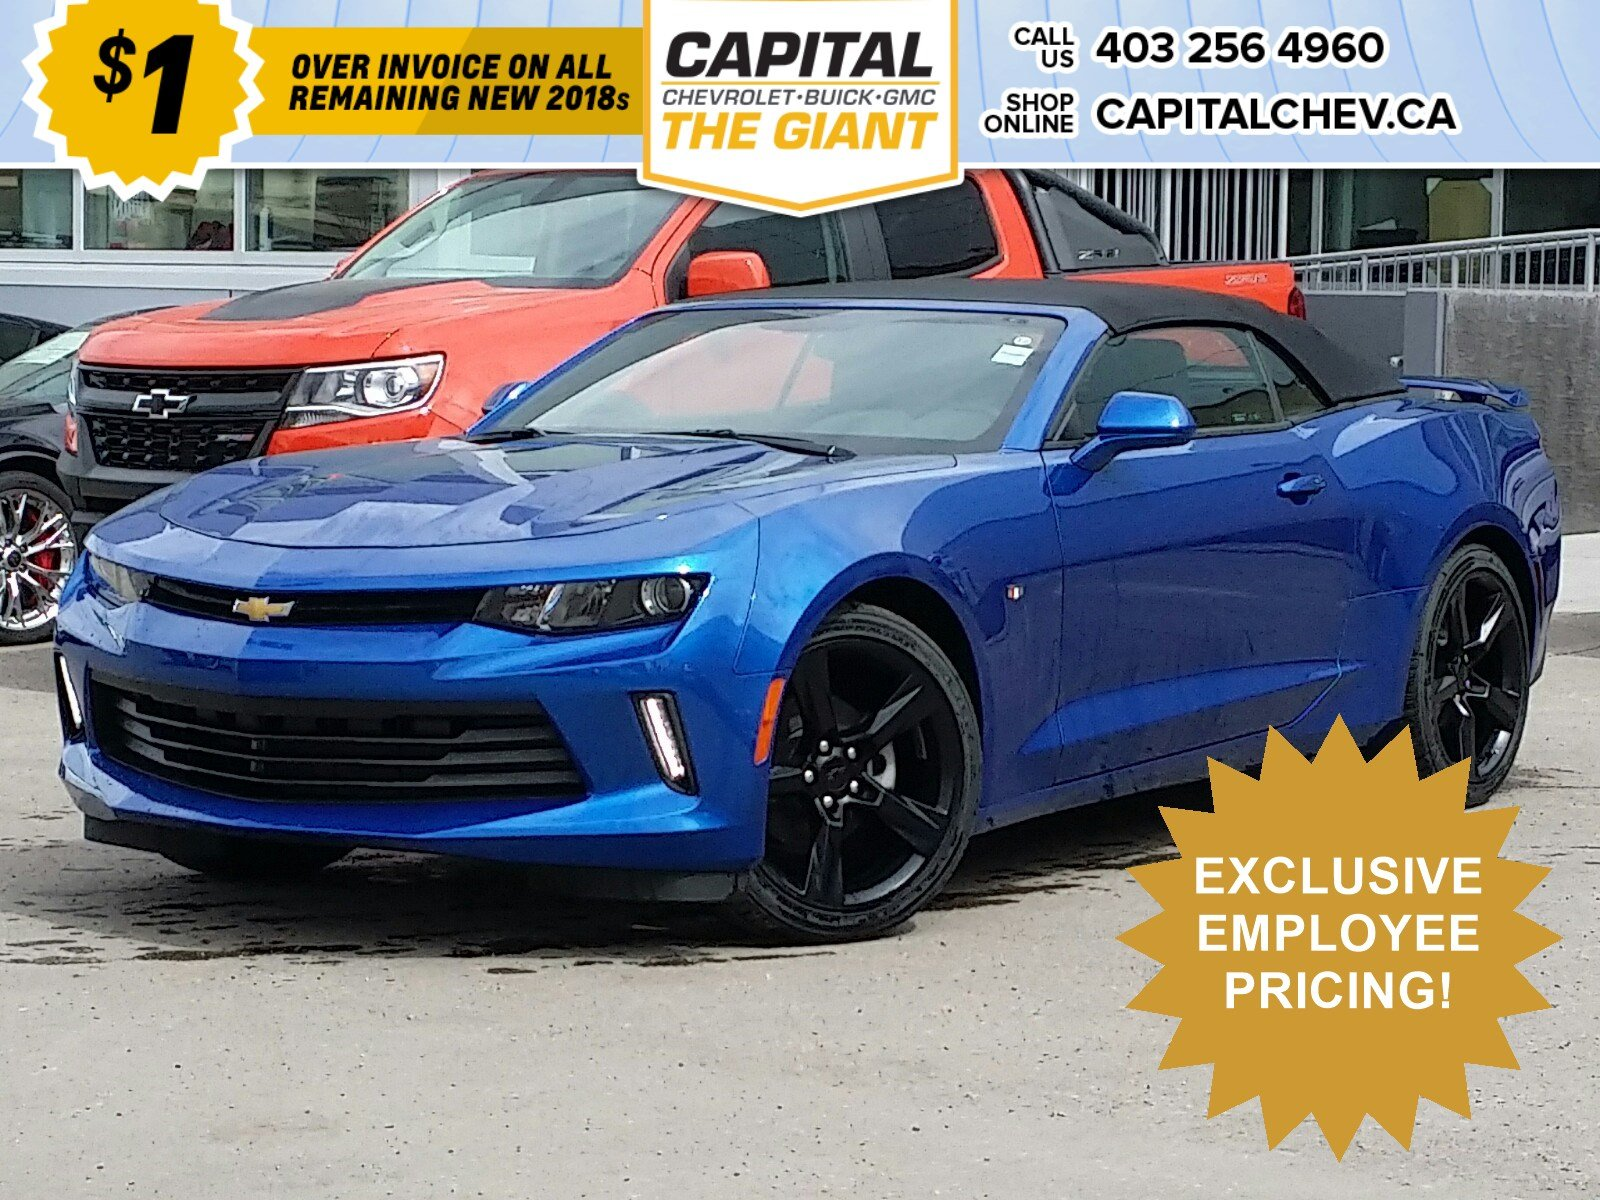 New 2018 Chevrolet Camaro LS - $1 OVER INVOICE